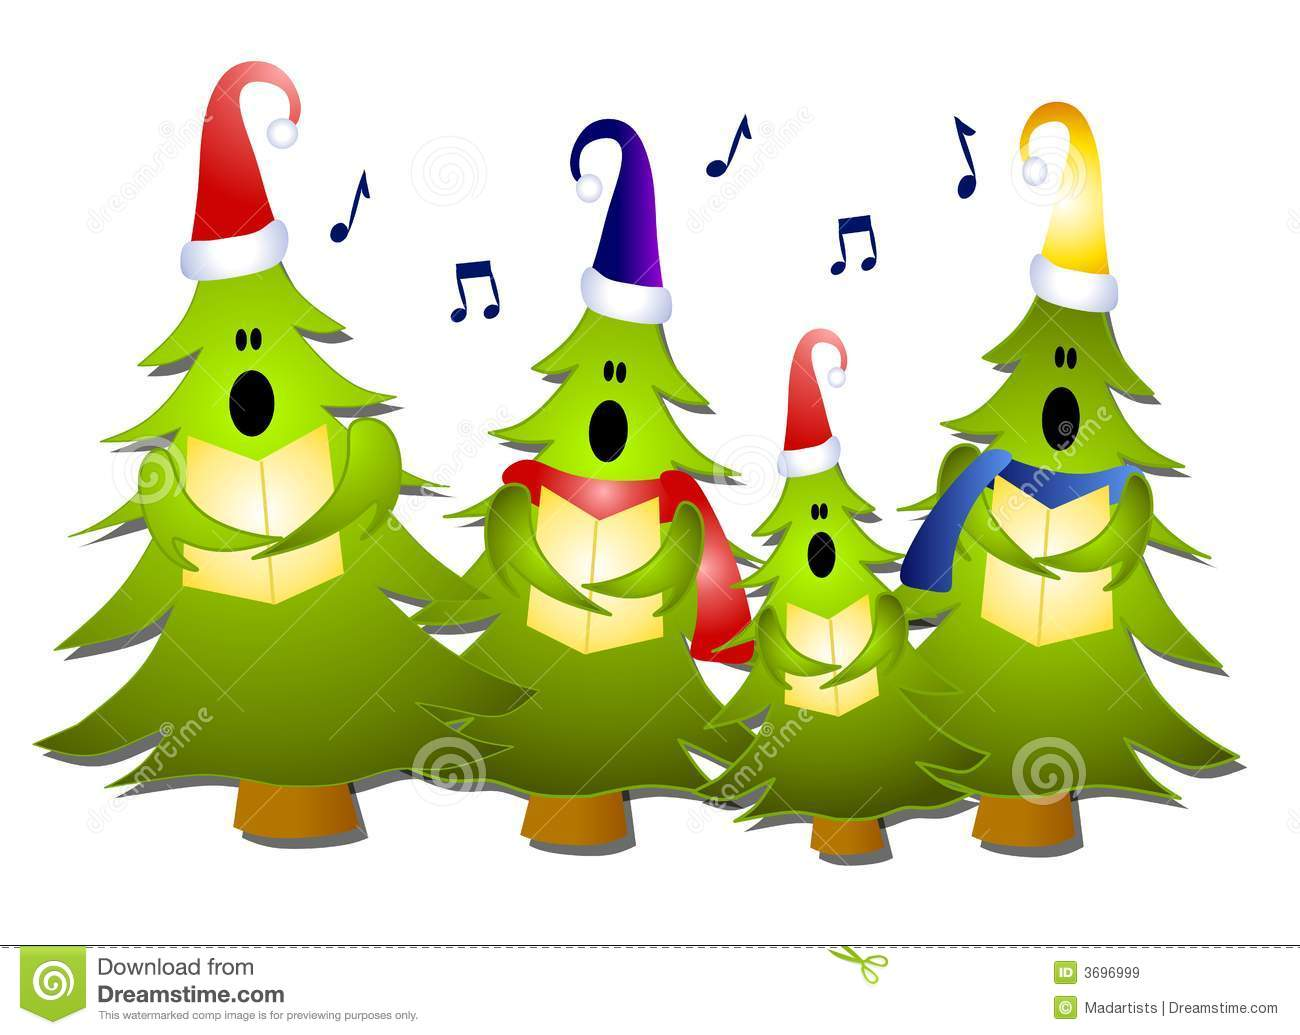 Christmas music notes tree. Caroling clipart school